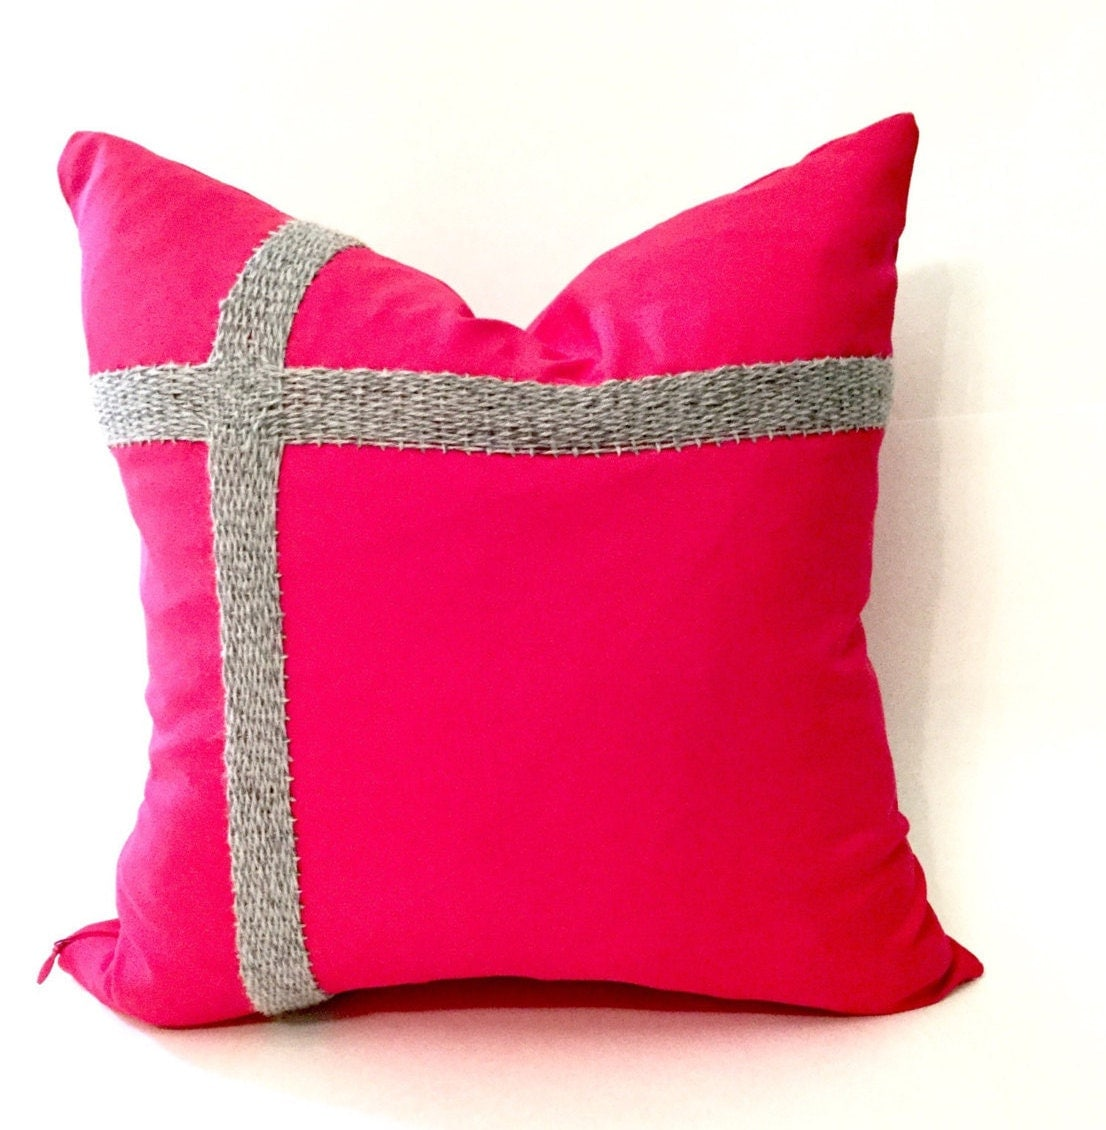 hot pink decorative throw pillow case grey by kelseyannkosinski. Black Bedroom Furniture Sets. Home Design Ideas